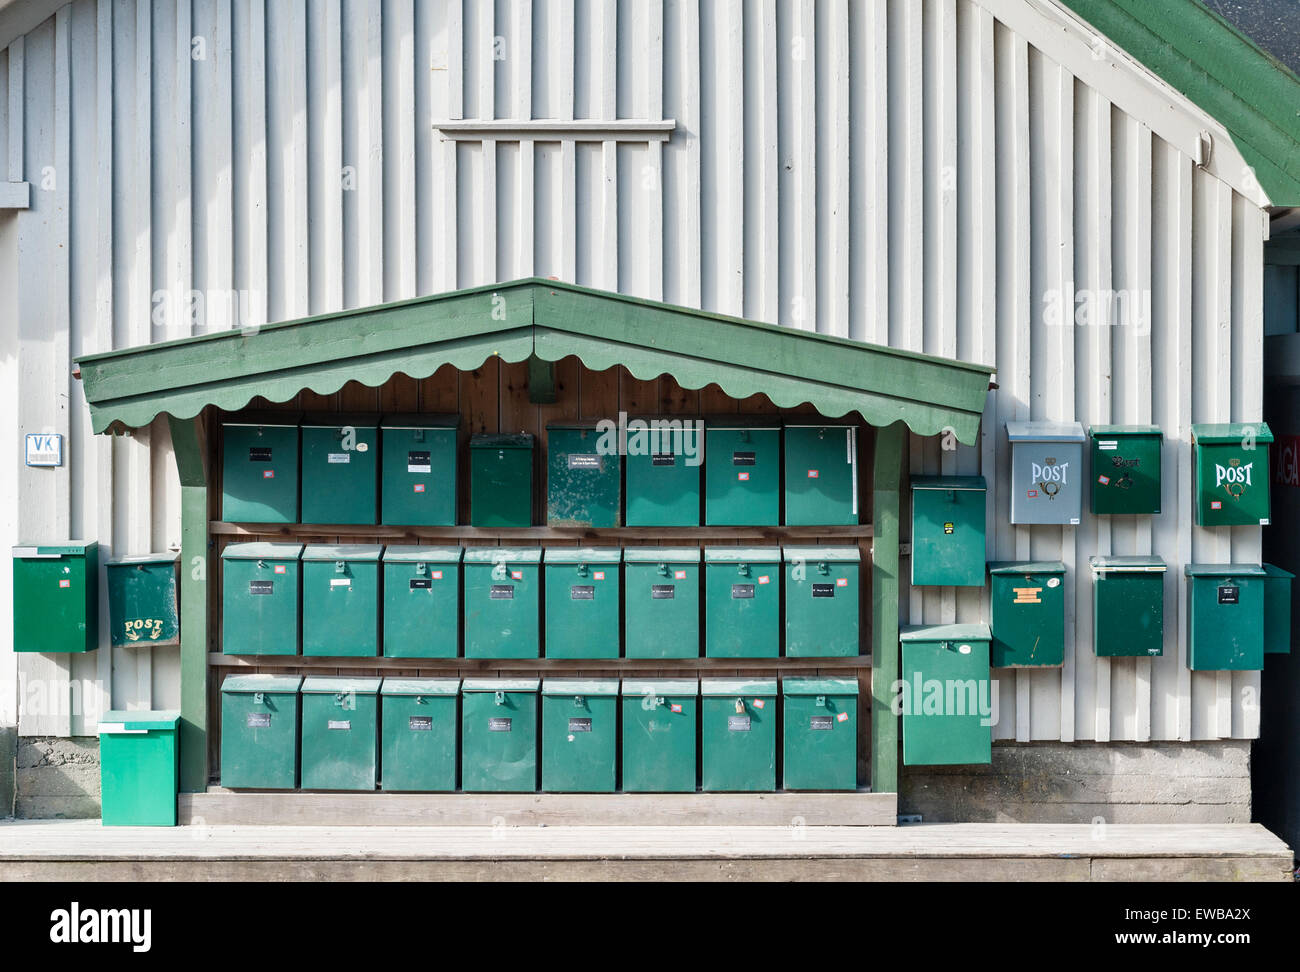 Norway - mailboxes on the island of Søndre Sandøy, one of the Hvaler islands south of Oslo near the Swedish - Stock Image